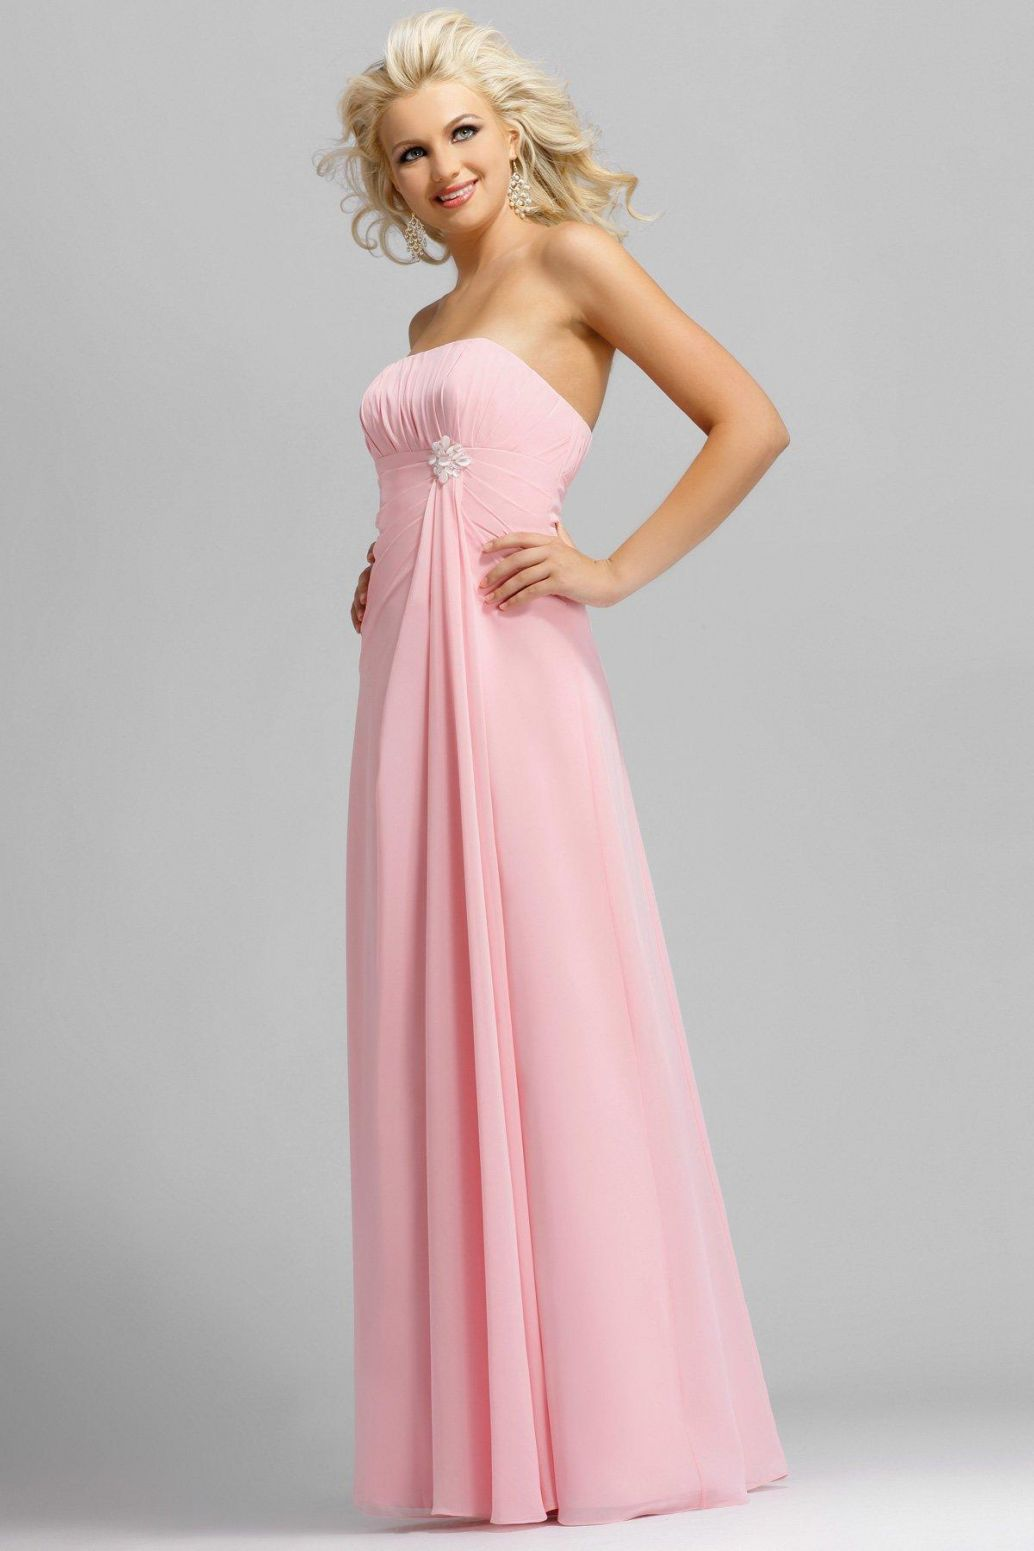 Long Bright Pink Bridesmaid Dress Designs